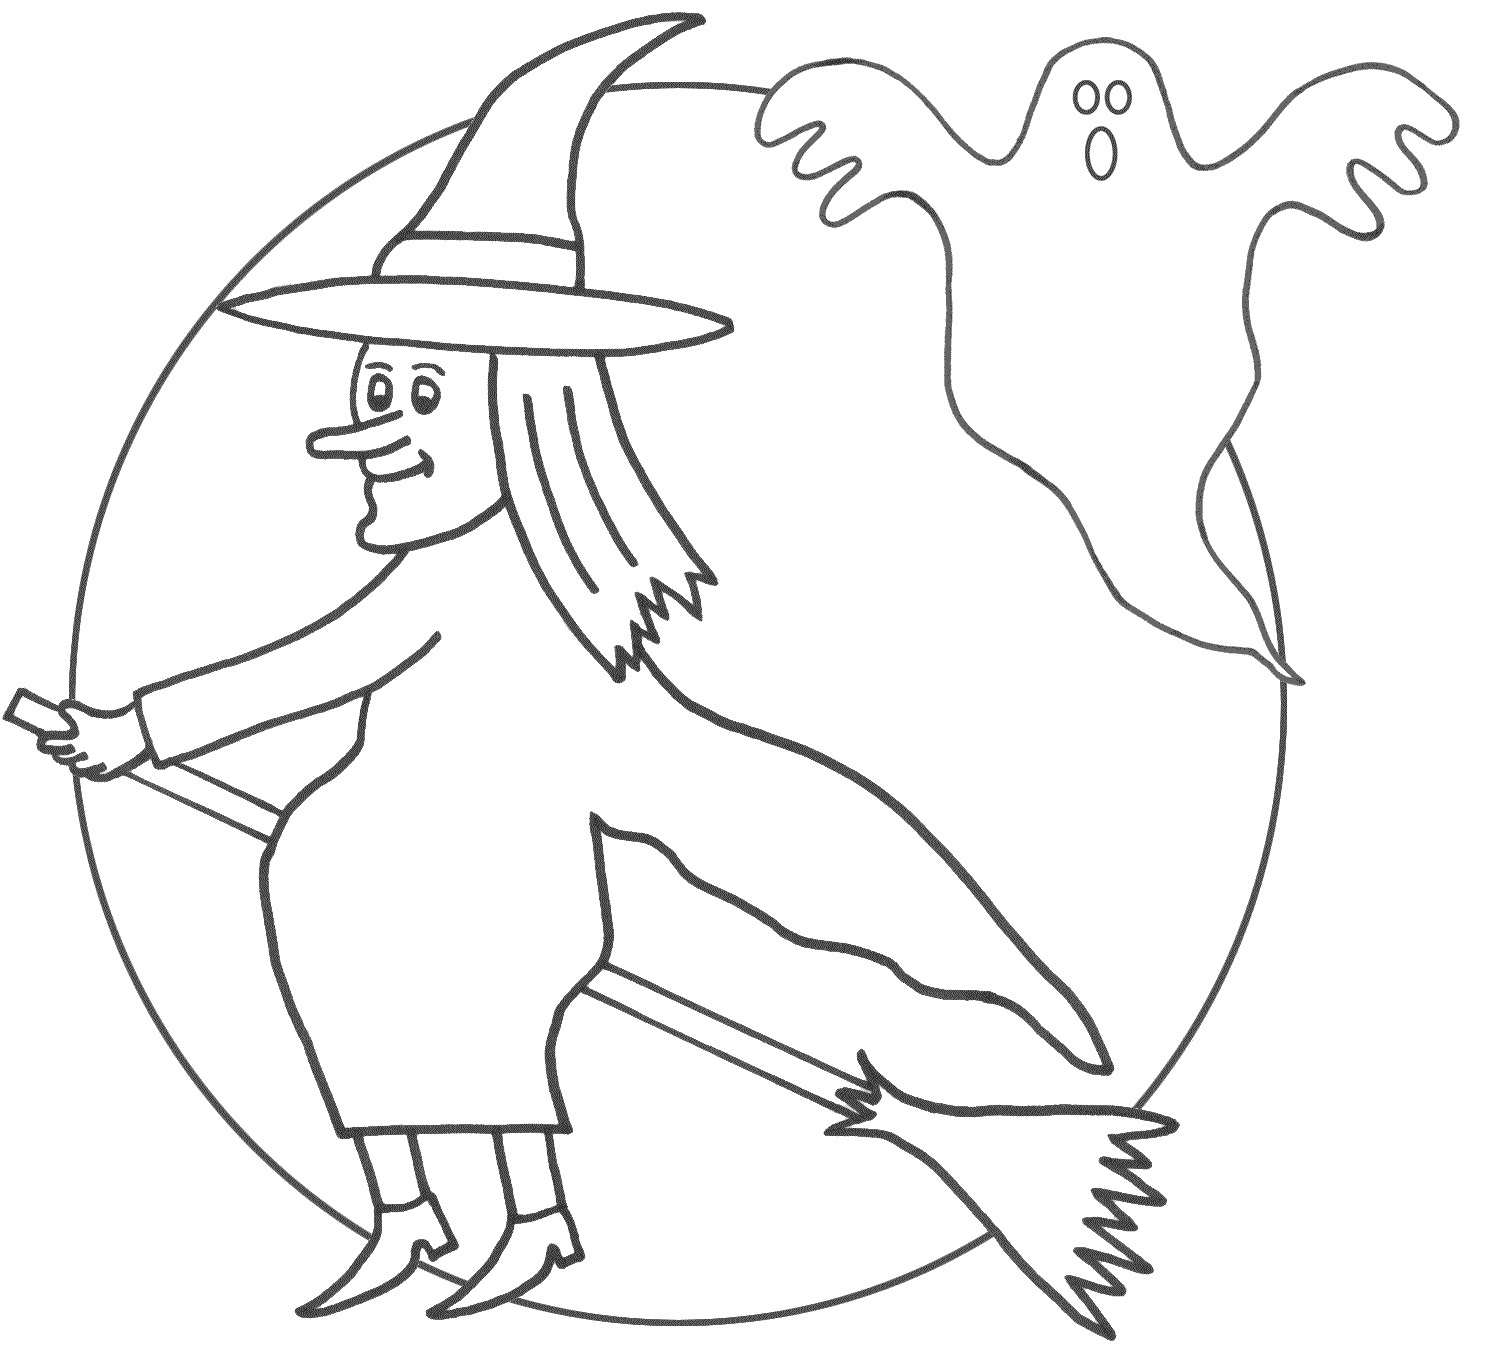 Moon coloring pages for preschoolers - Witch Coloring Pages Preschool